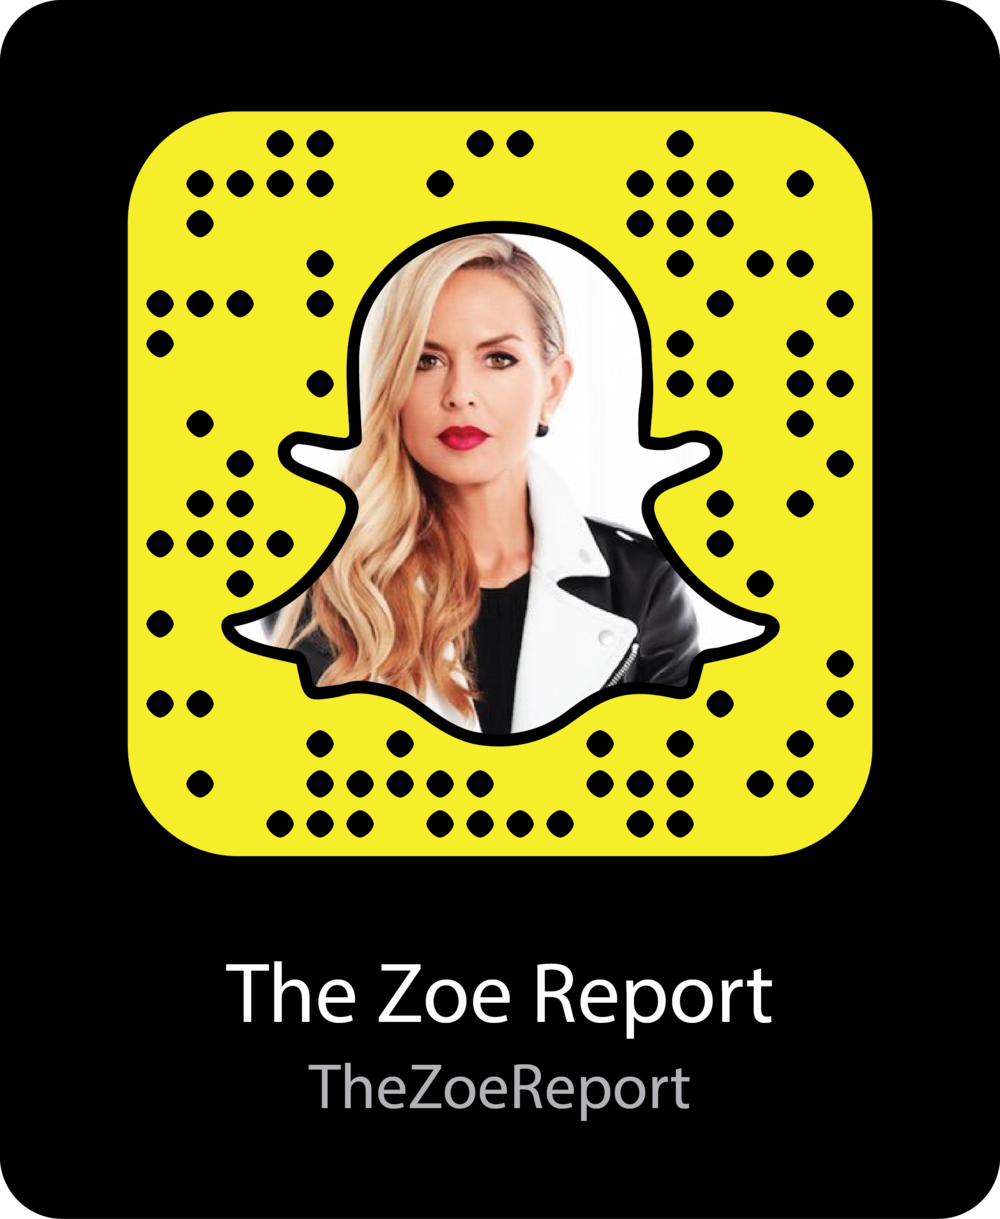 TheZoeReport-Beauty-Bloggers-snapchat-snapcode.png